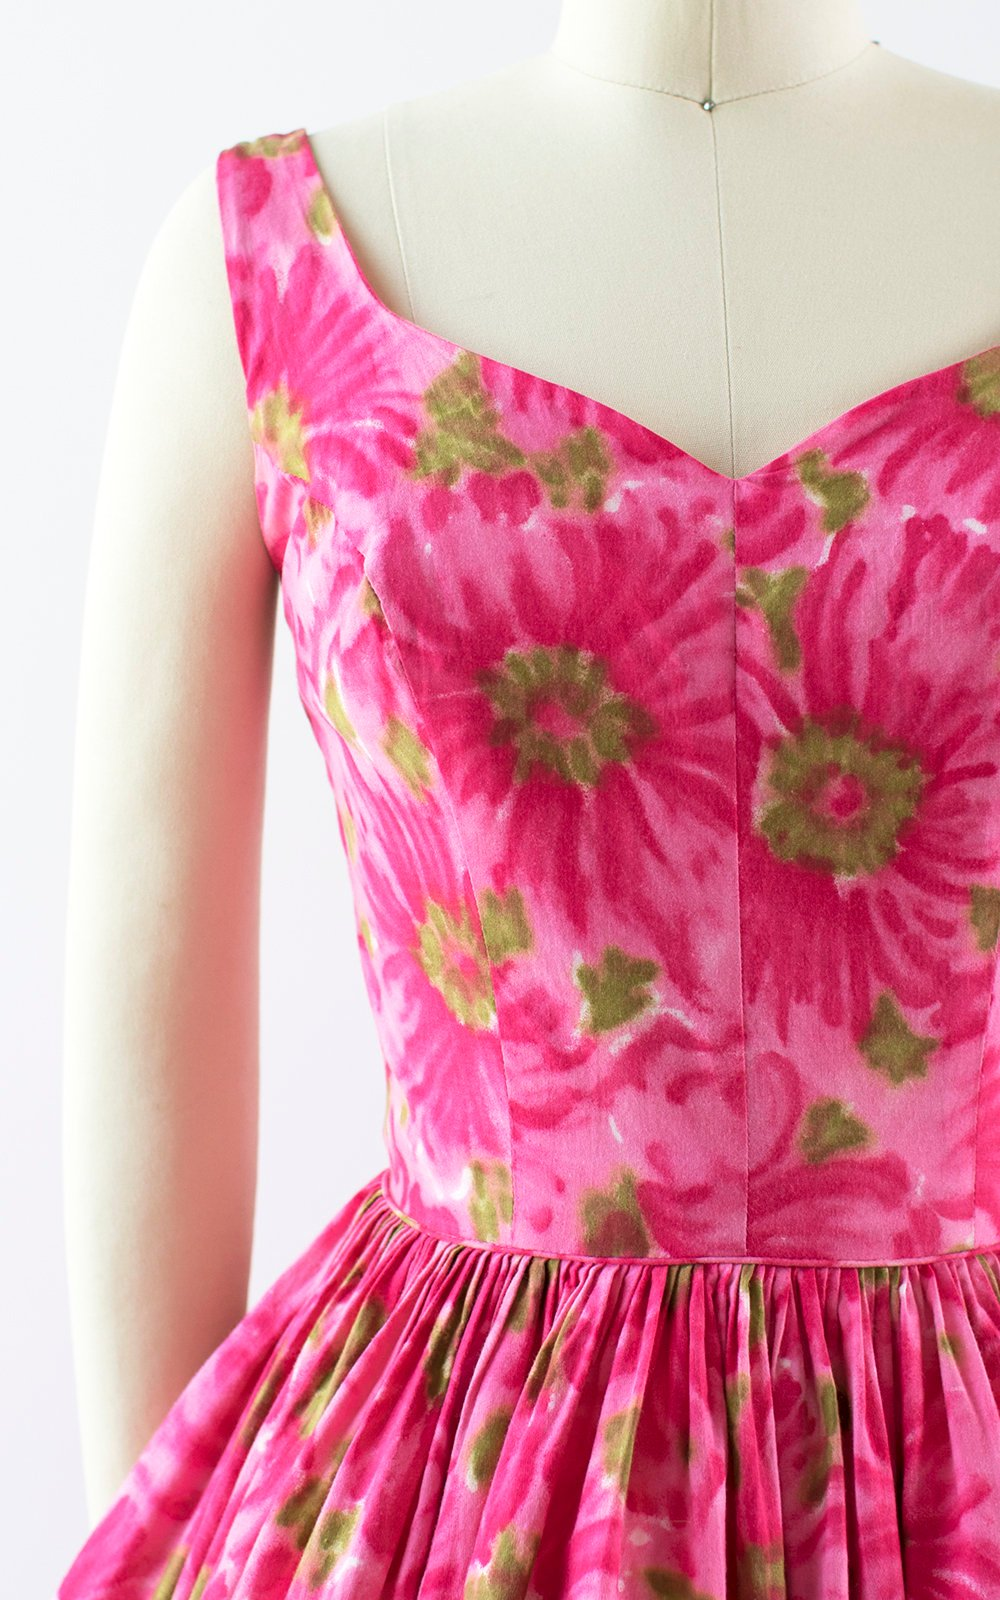 Vintage 1950s Dress | 50s Hot Pink Floral Cotton Sundress Full Skirt Day Dress (x-small)